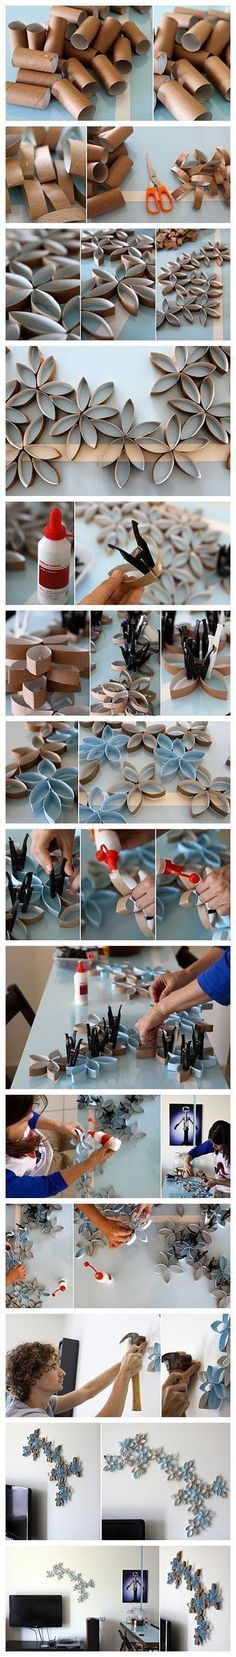 How to DIY toilet paper roll wall art project (Diy Paper Towel) Toilet Paper Roll Art, Rolled Paper Art, Wall Decor Crafts, Diy Wall Art, Wall Decorations, Diy Decoration, 3d Wall, Home Crafts, Fun Crafts